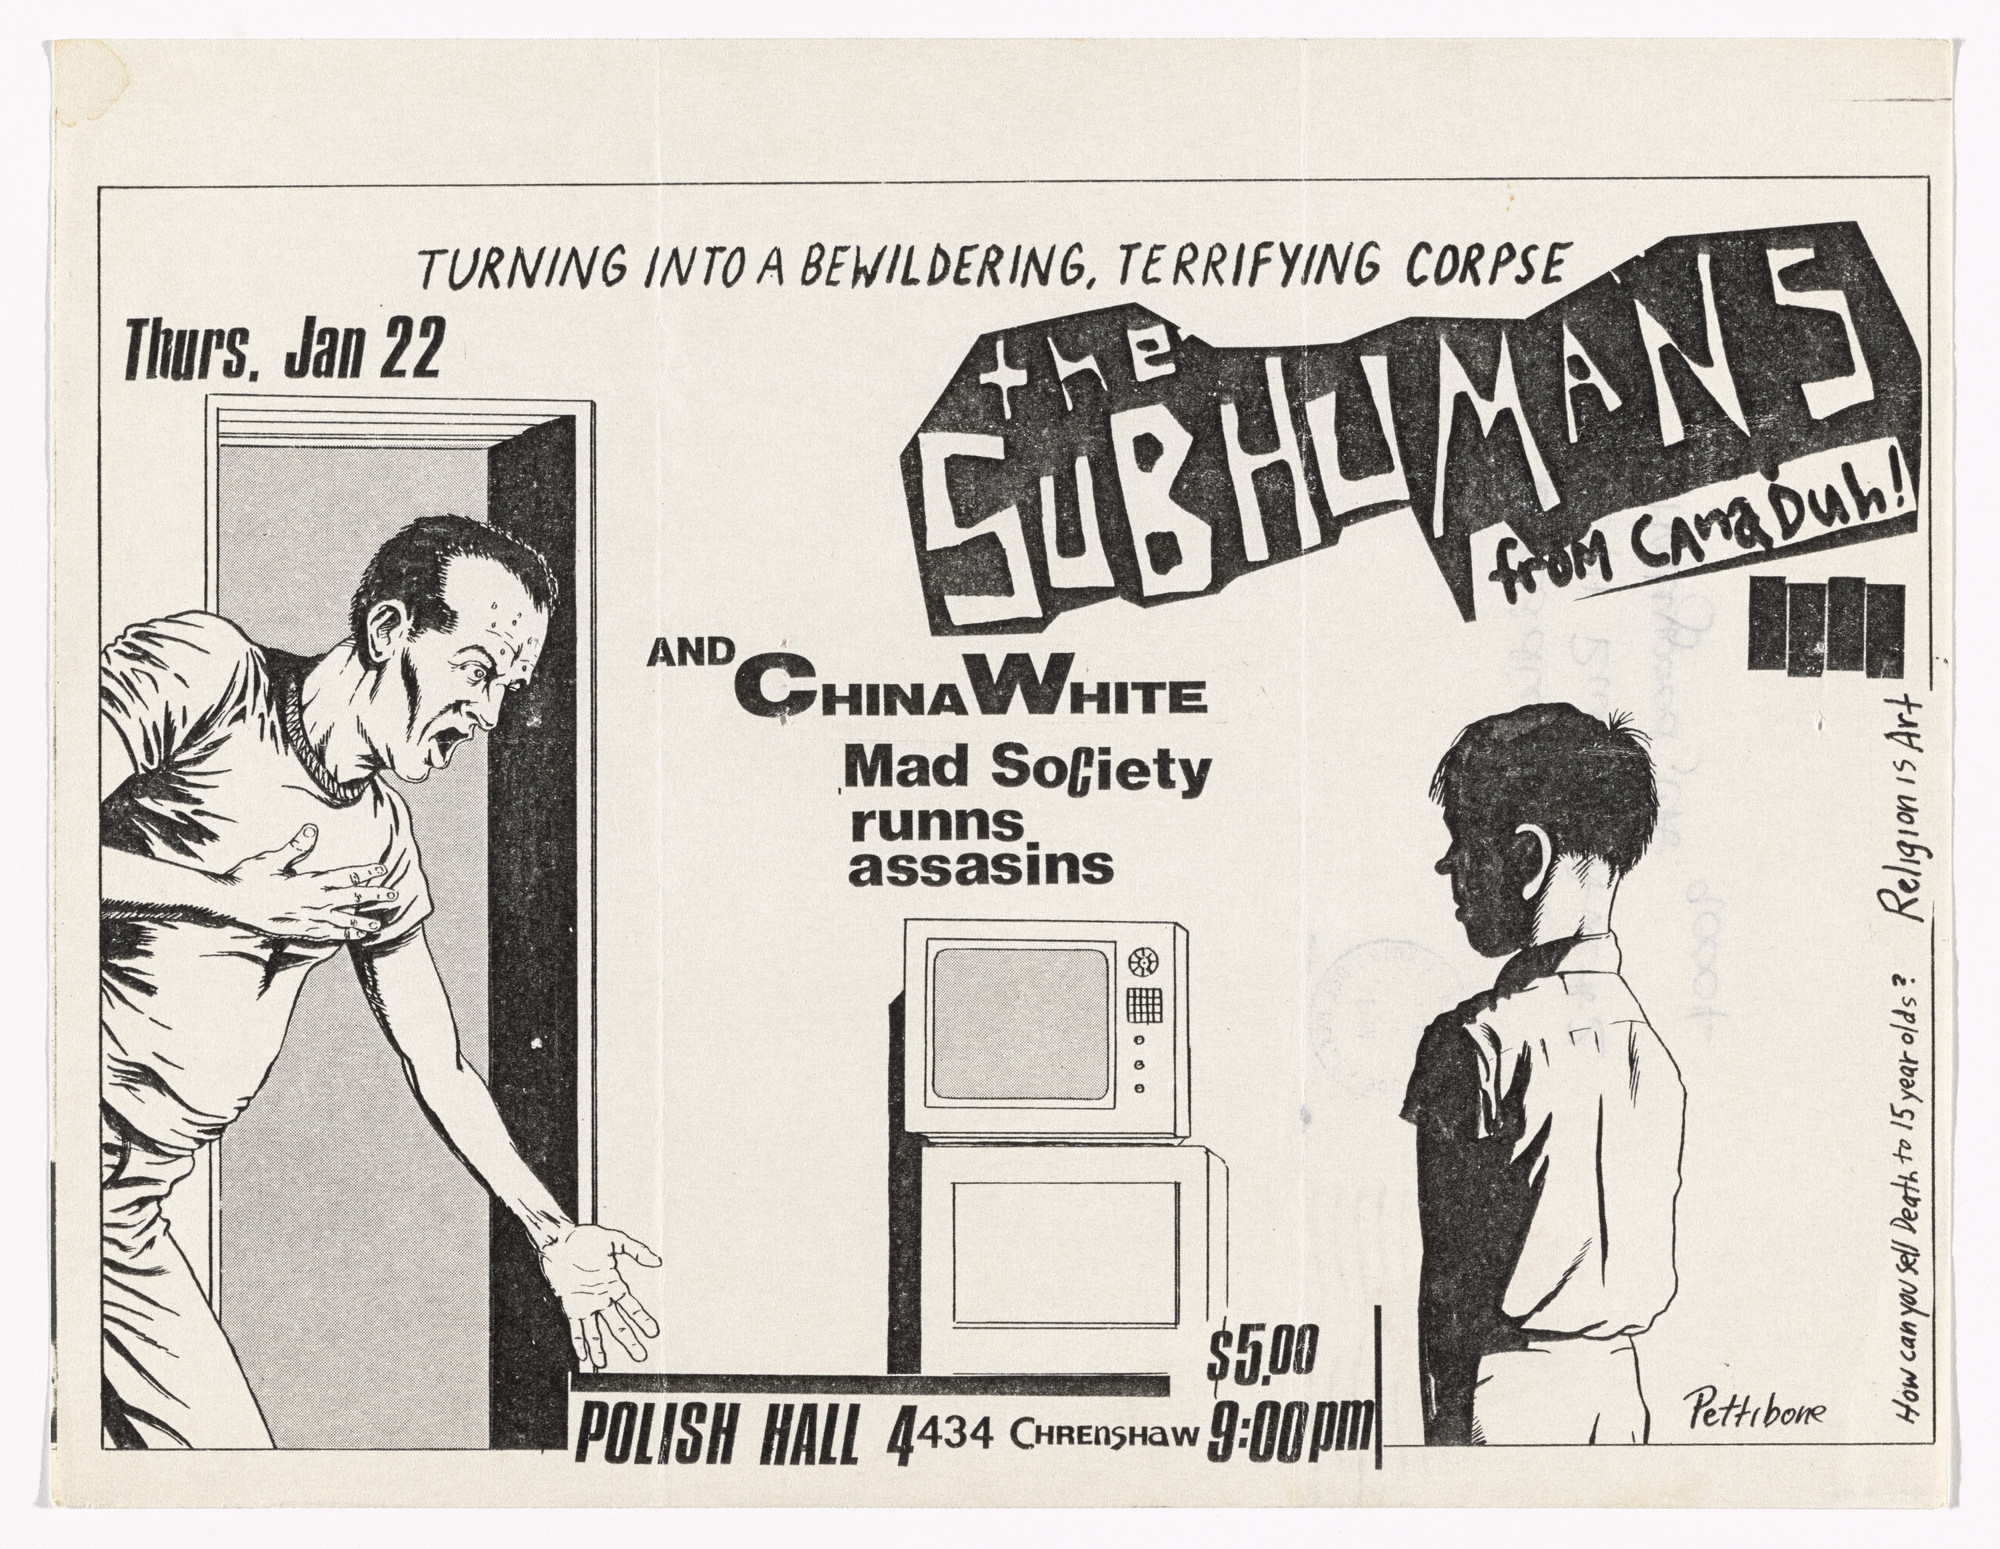 Raymond Pettibon. The Subhumans at Polish Hall. January 22, 1981